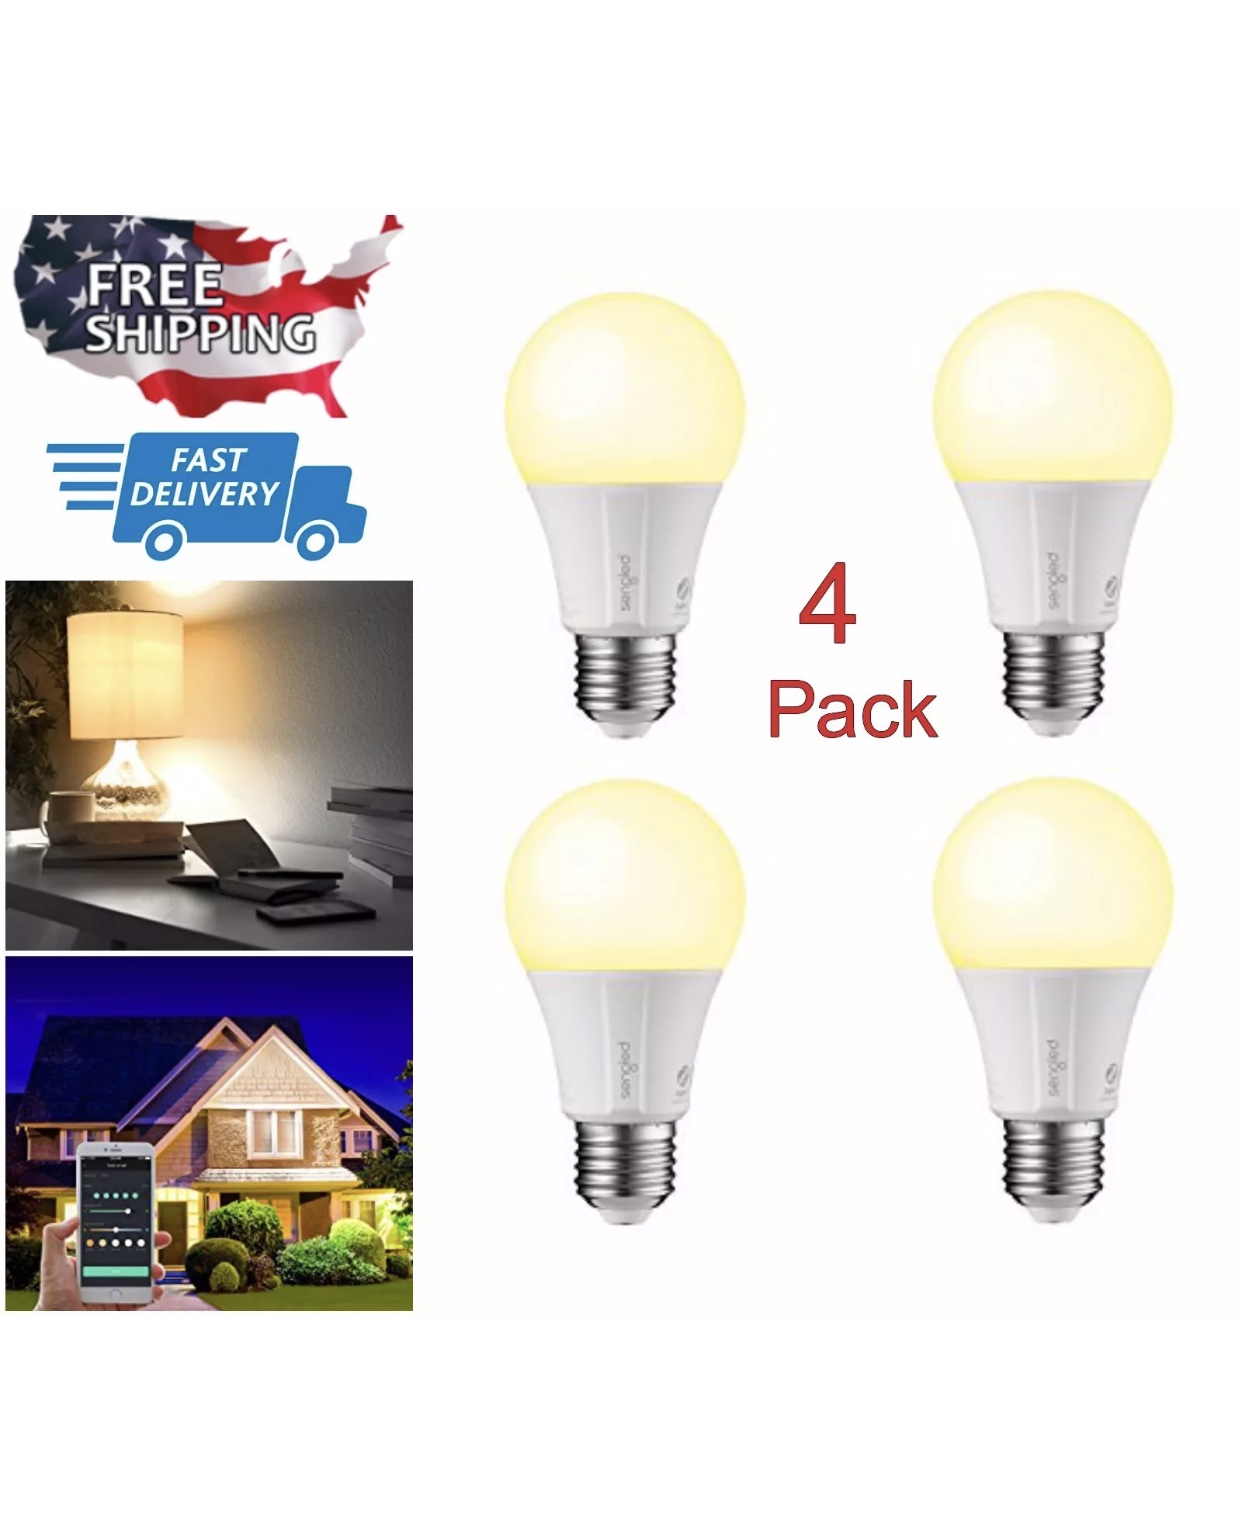 60w Light Bulb 4 Pack 60w Light Smart Home Dimmable Led Bulb Wifi Bluetooth Smartphone Alexa Control From Today S Tec